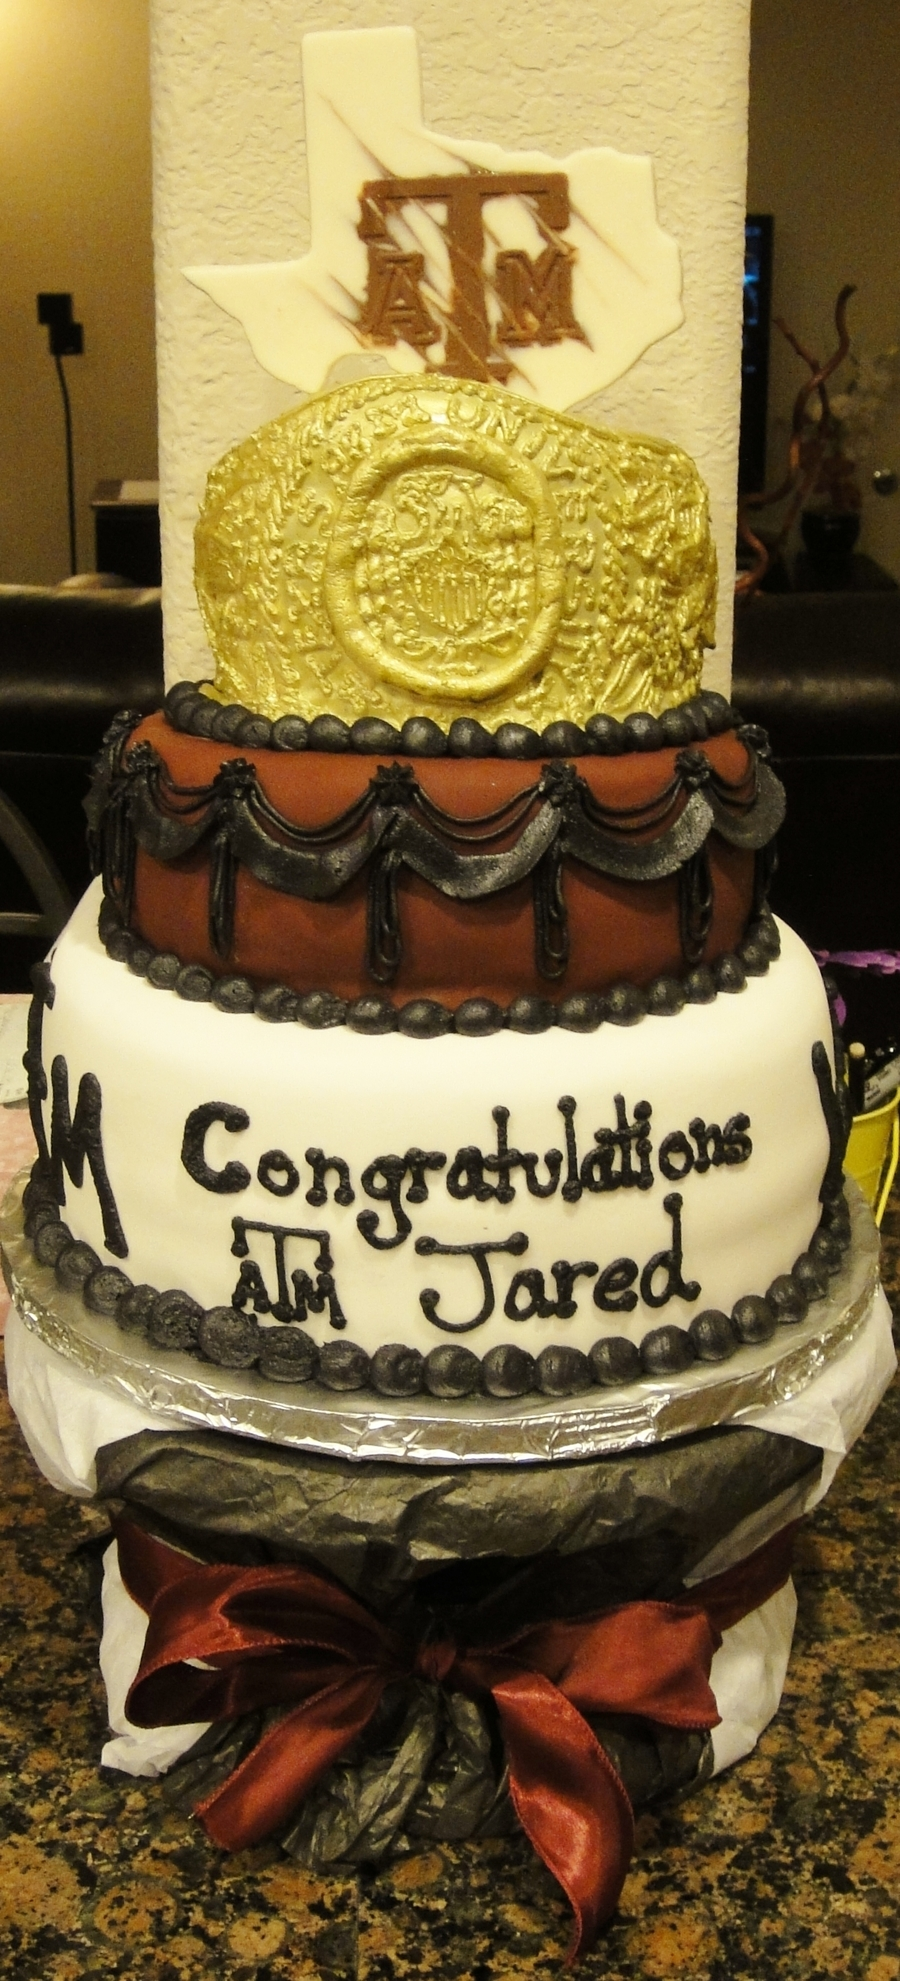 Texas A&m Graduation on Cake Central